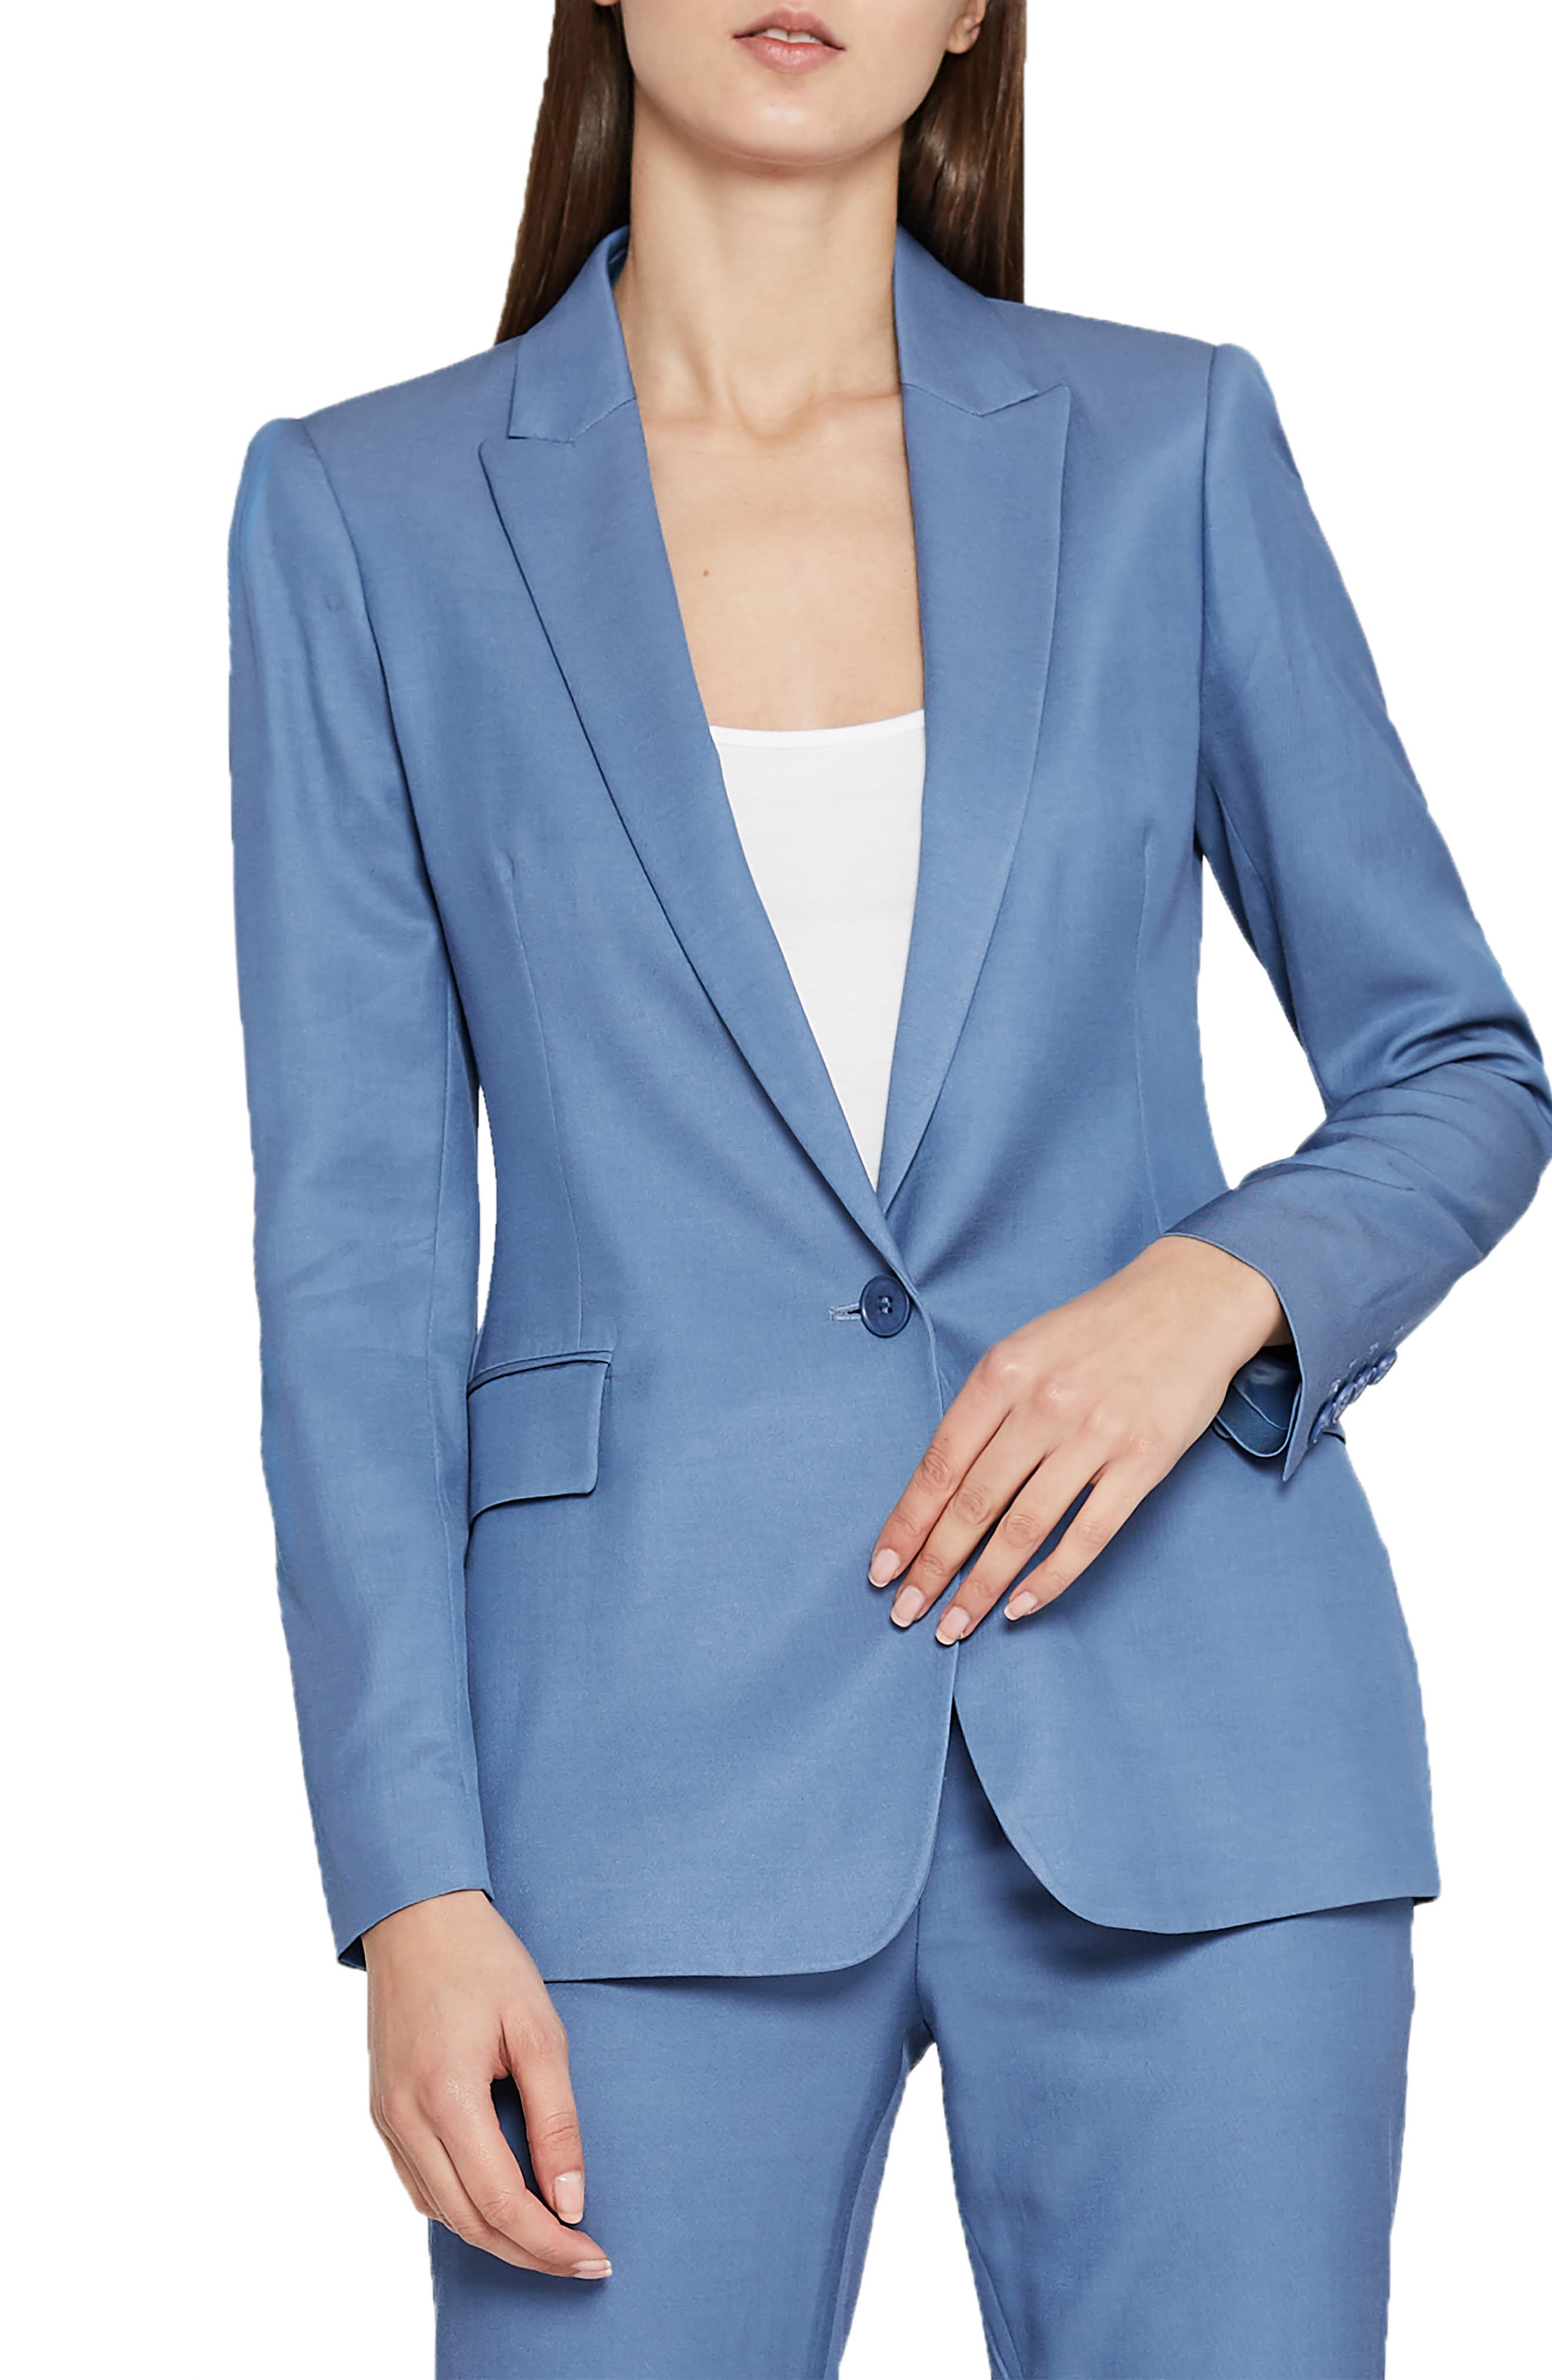 REISS Etta Slim Fit Blazer in Marine Blue